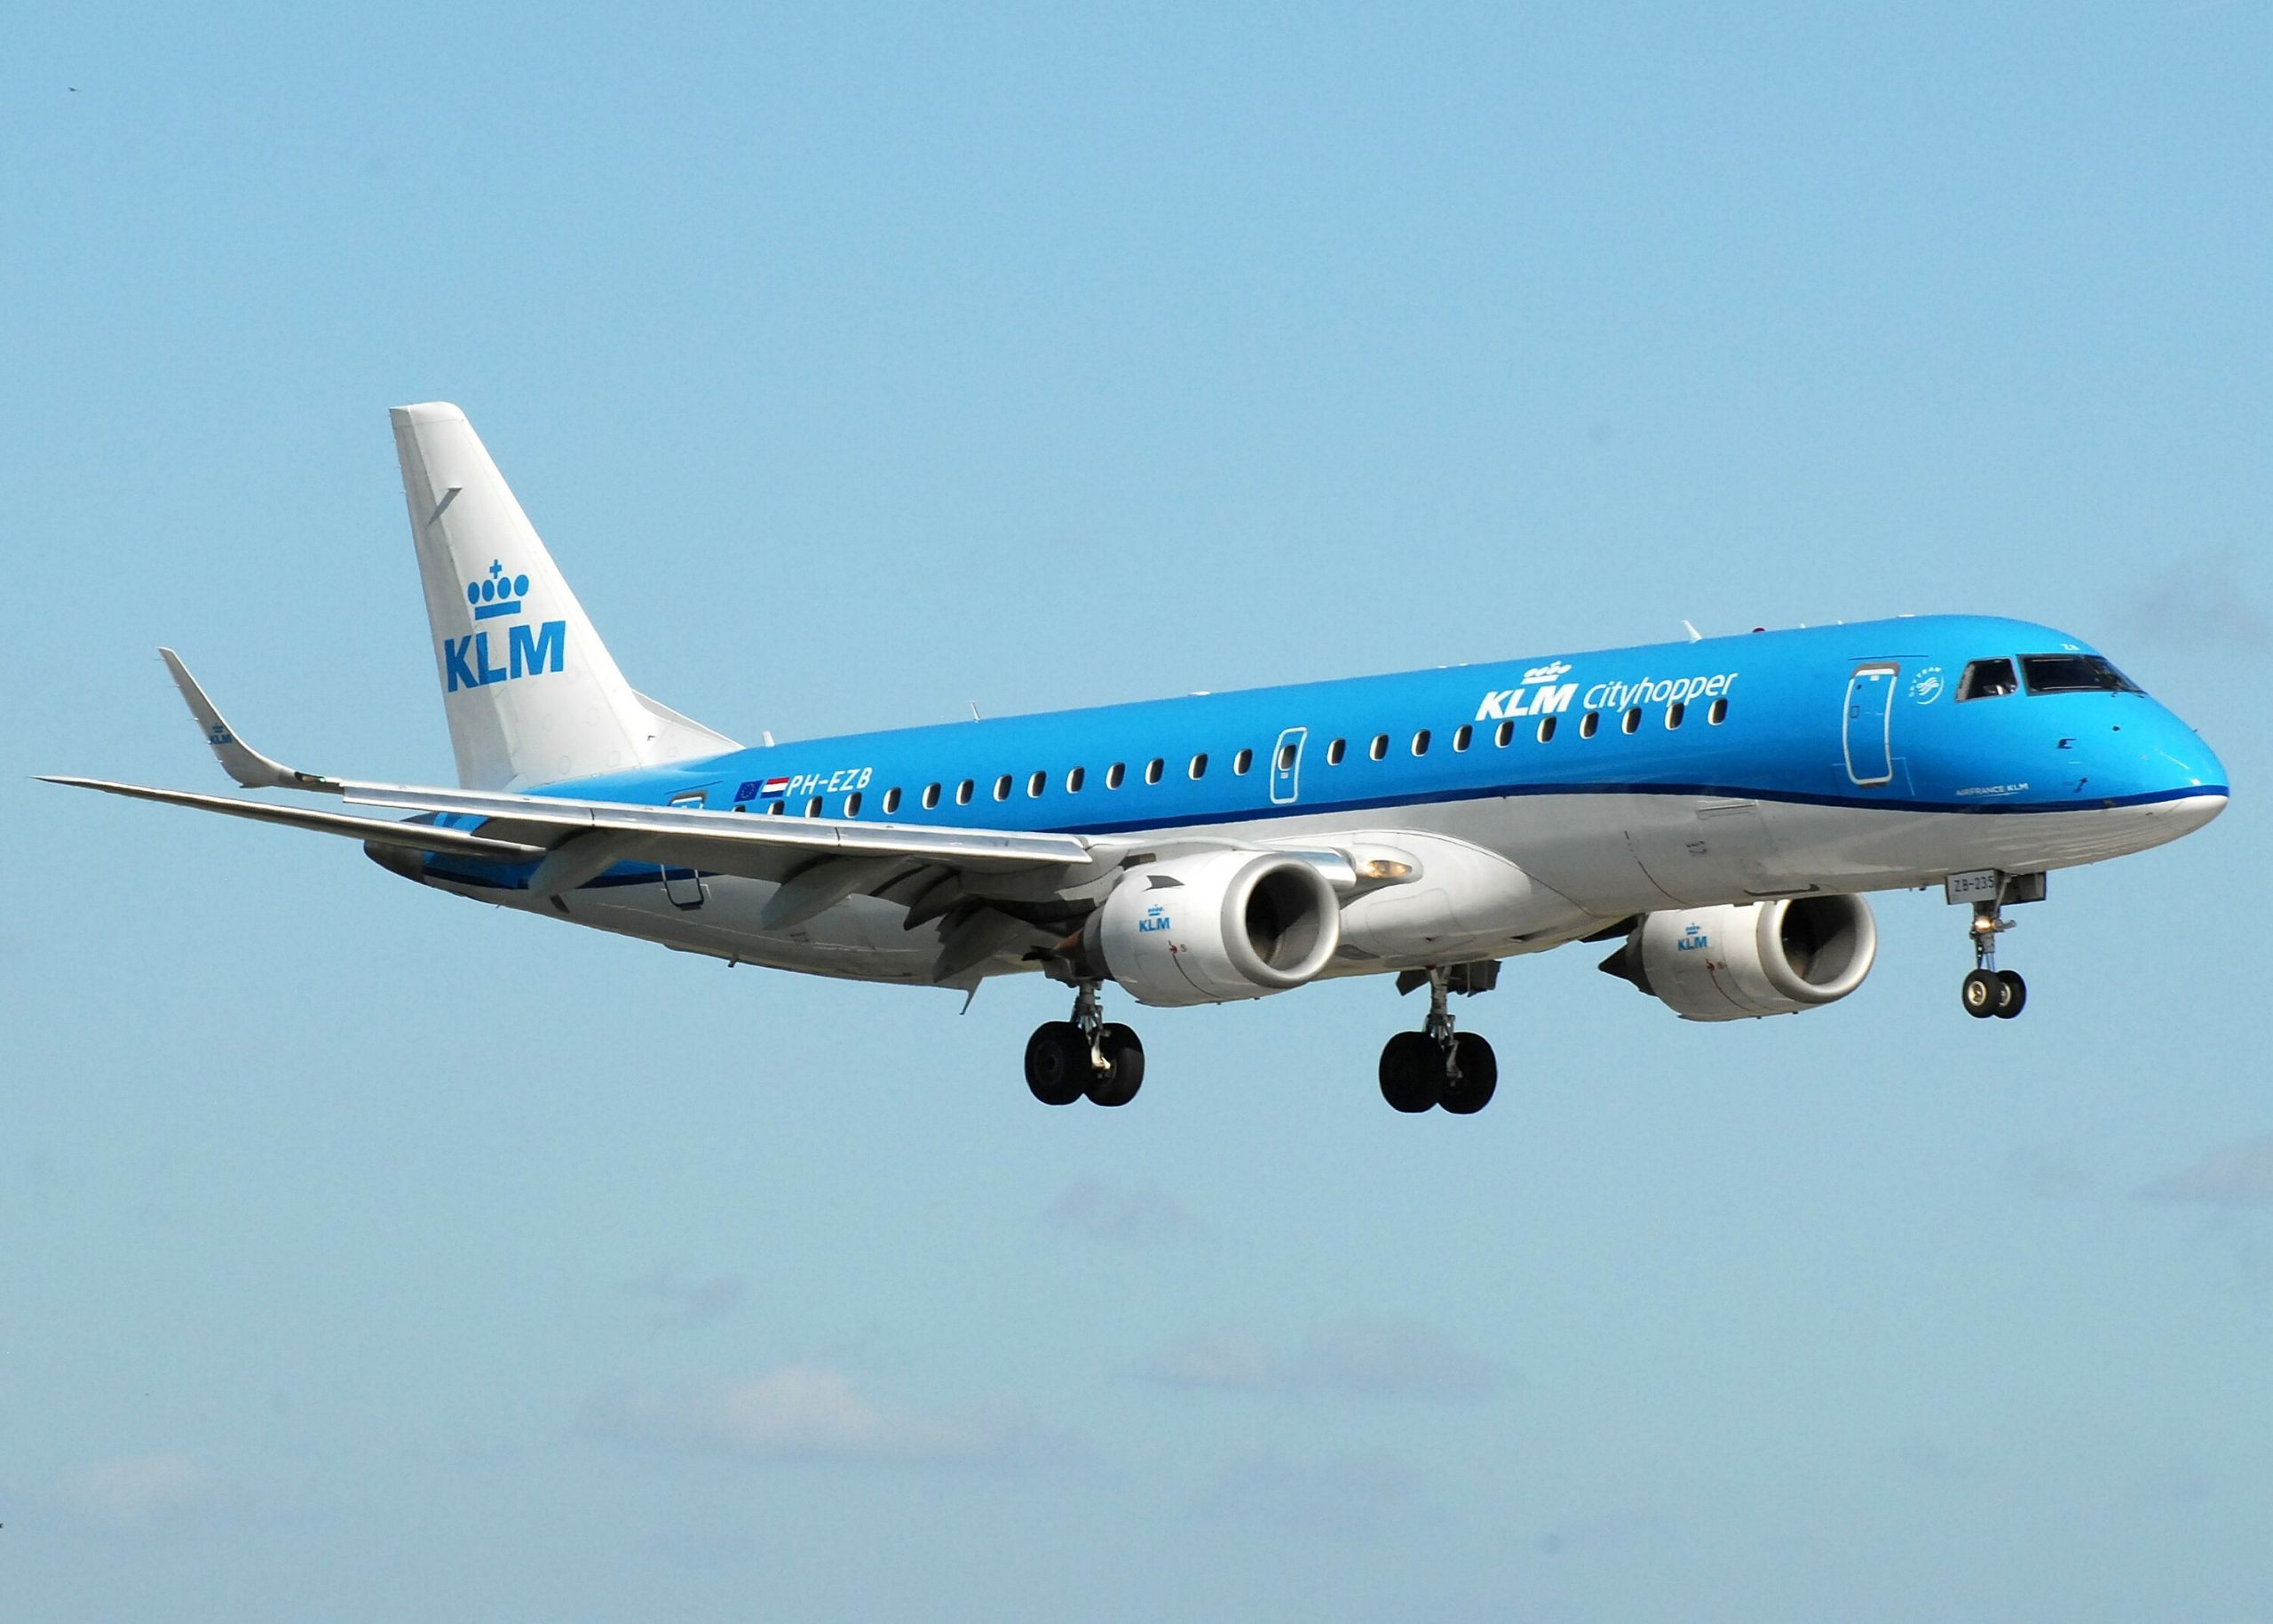 KLM announces a new daily service to Amsterdam from Cork Airport